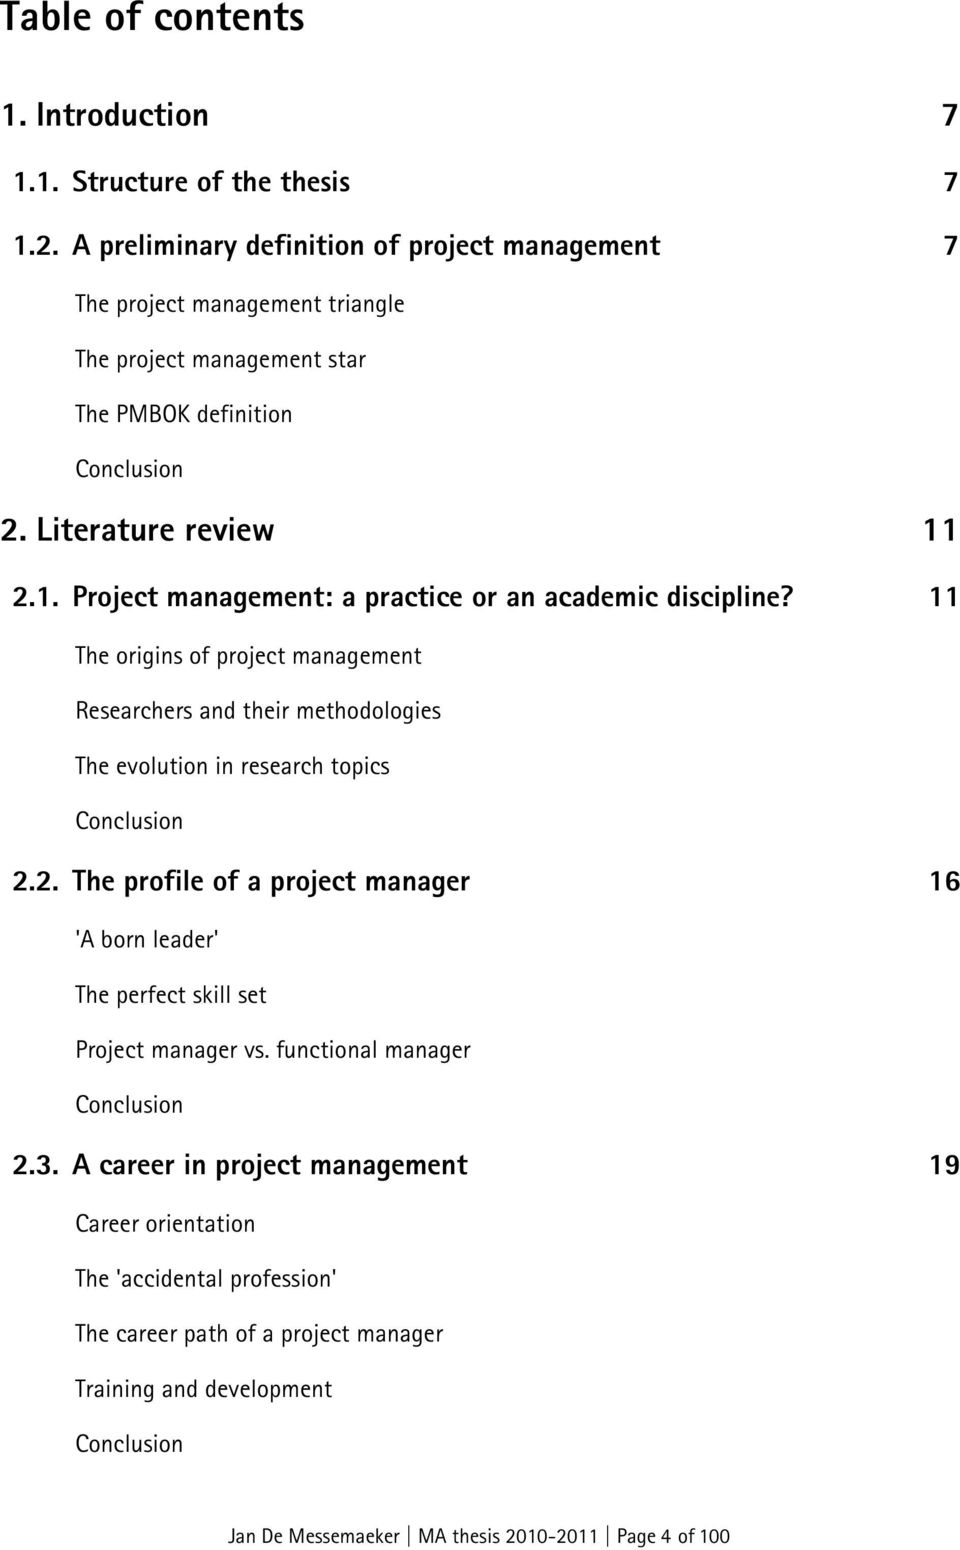 2.1. Project management: a practice or an academic discipline? 11 The origins of project management Researchers and their methodologies The evolution in research topics Conclusion 2.2. The profile of a project manager 16 'A born leader' The perfect skill set Project manager vs.